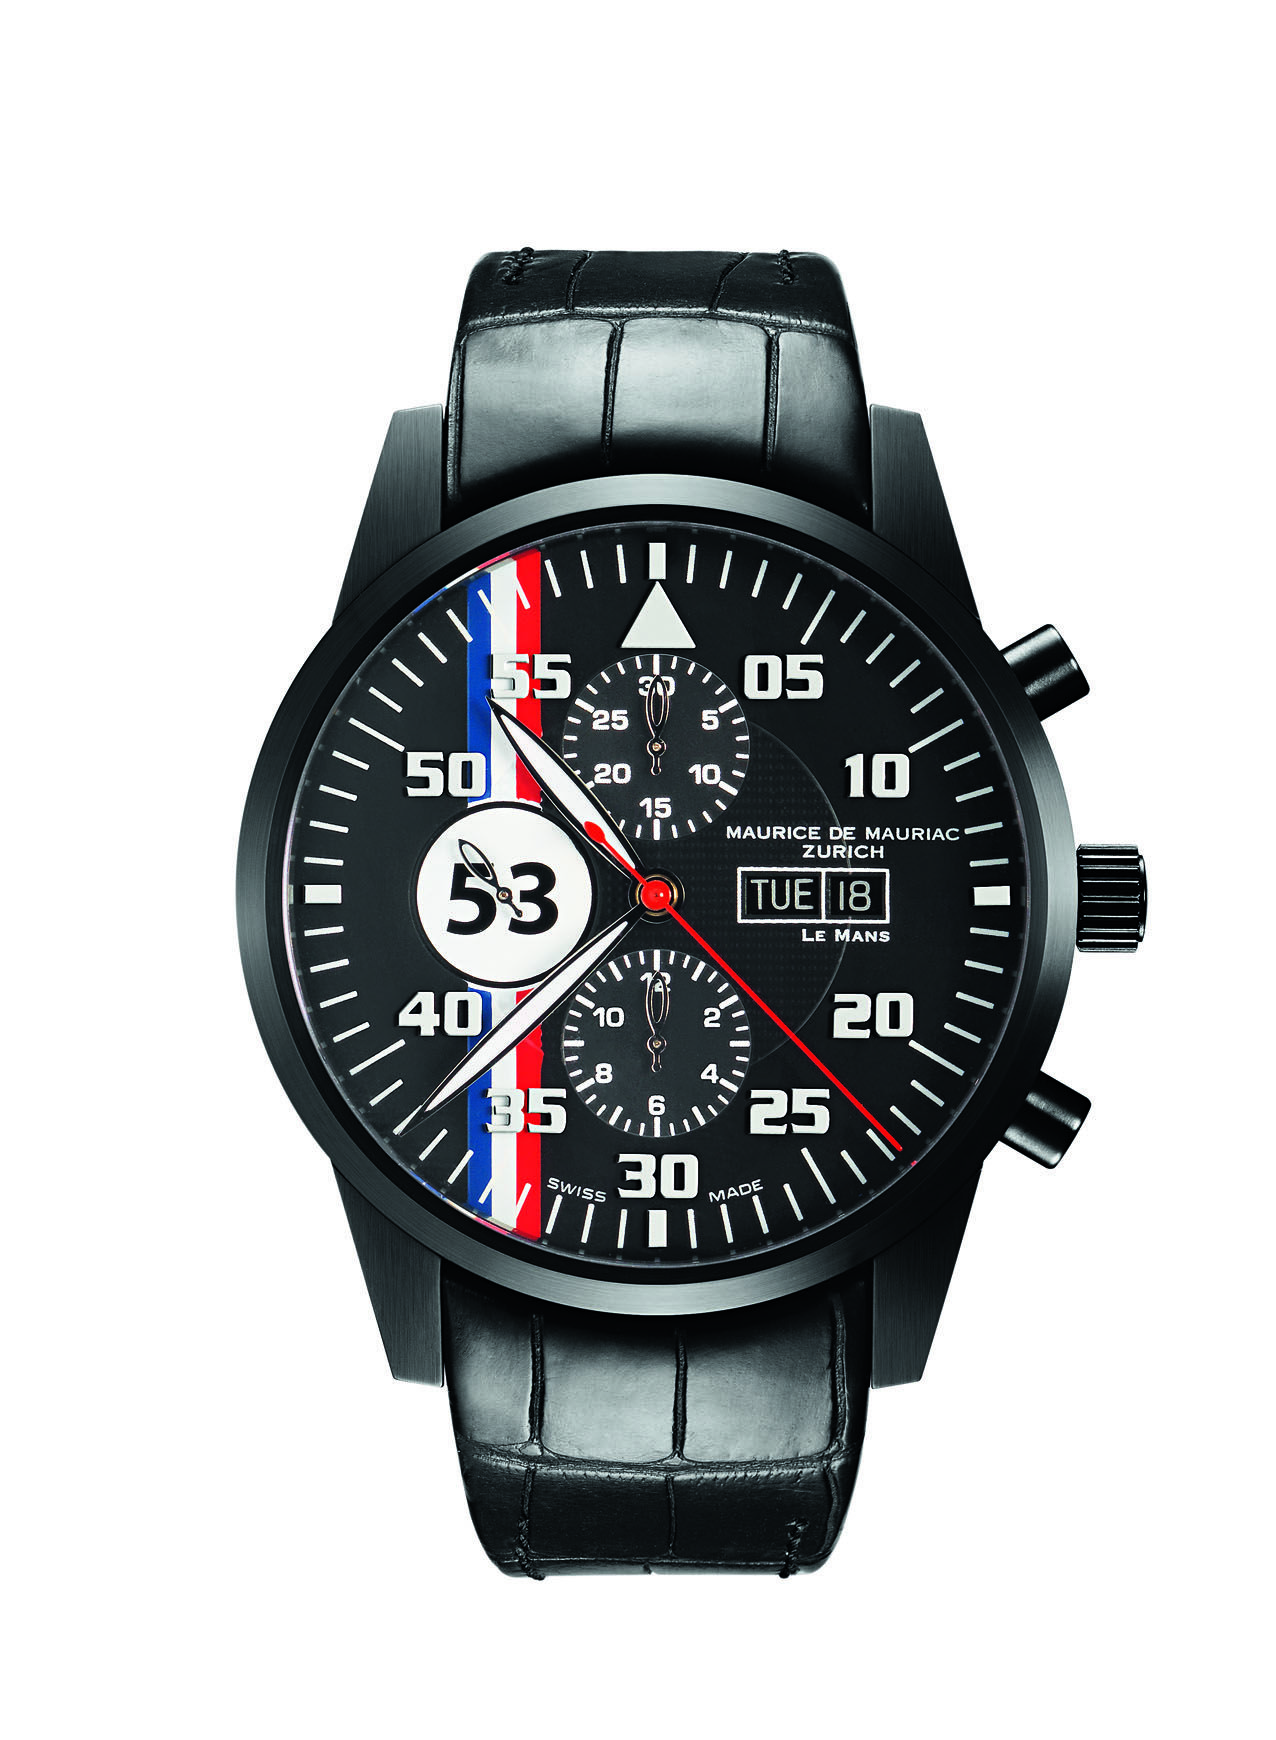 Upscale Very Watches Watches Men Wholesale Maurice De Mauriac Official Site Watches Made By Zurich Le Mans Racing